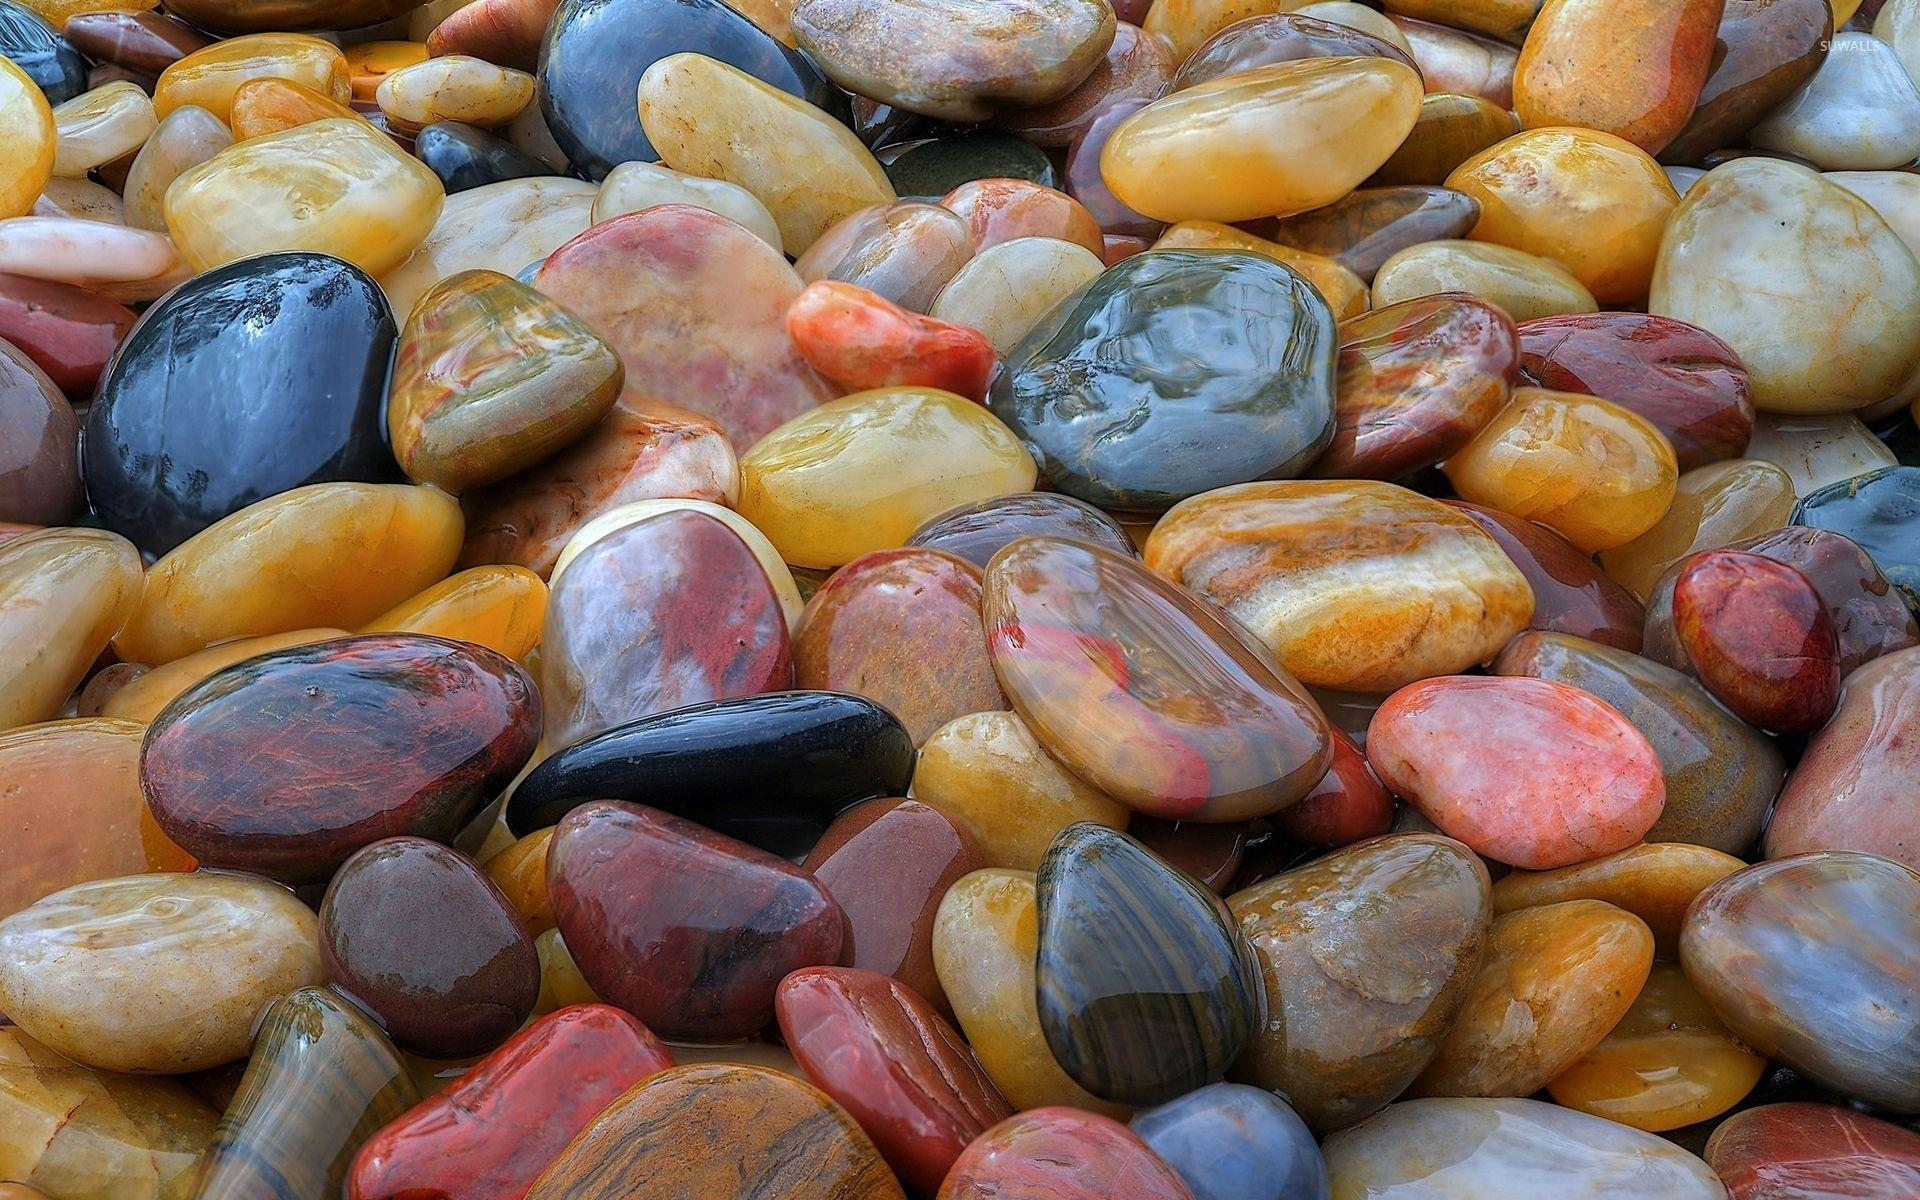 Shiny pebbles wallpaper - Photography wallpapers - #36481